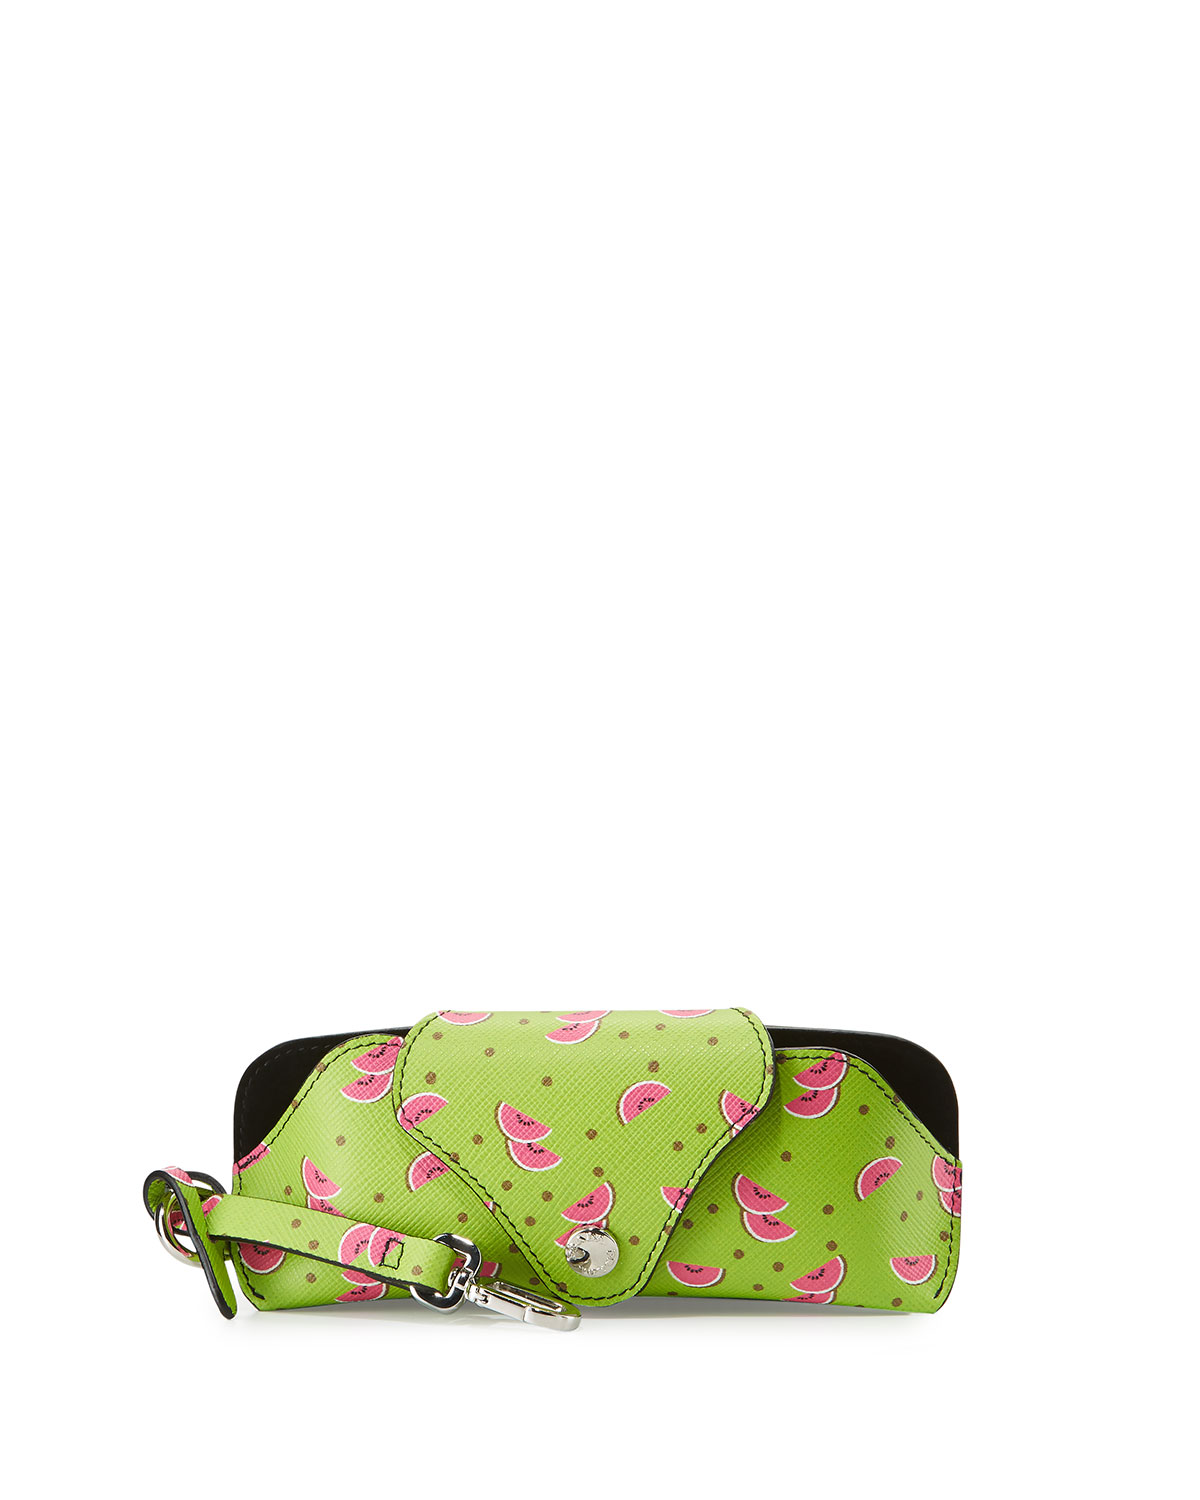 Saffiano Watermelon Glasses Case, Green